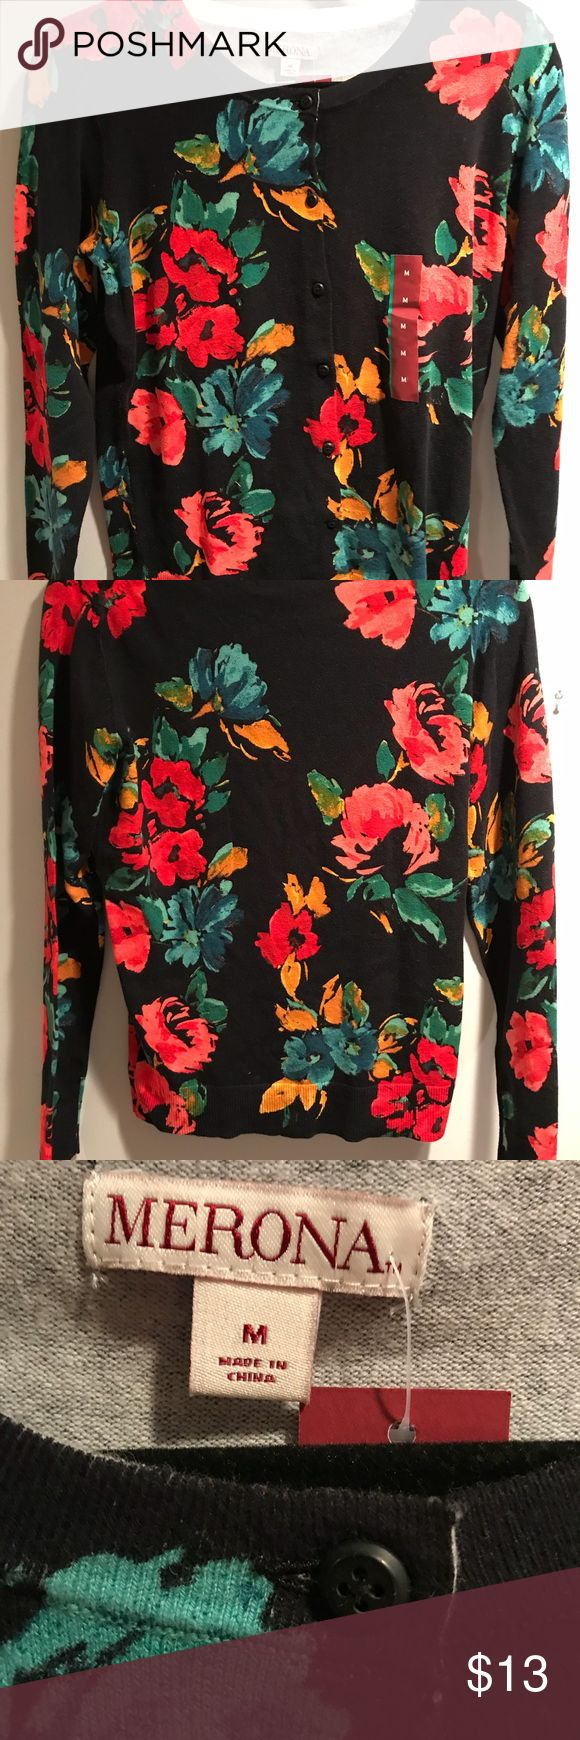 SUPER SOFT NAVY BACKGROUND WITH PEONIES BNWT SUPER SOFT NAVY BACKGROUND WITH PEONIES.  BUTTON DOWN CARDI BNWT MERONA Super cotton blend sweater,cardi or you can even wear this a top by itself . The colors of the flowers are vibrant and will go with everything or your closet! They are , pink, melon colored, mustard yellow, red, teal, light green and green.   Brand New With Tags Attached Comes from a smoke and pet free home.  Please check out my other listings! I offer a 10% bundling discount…